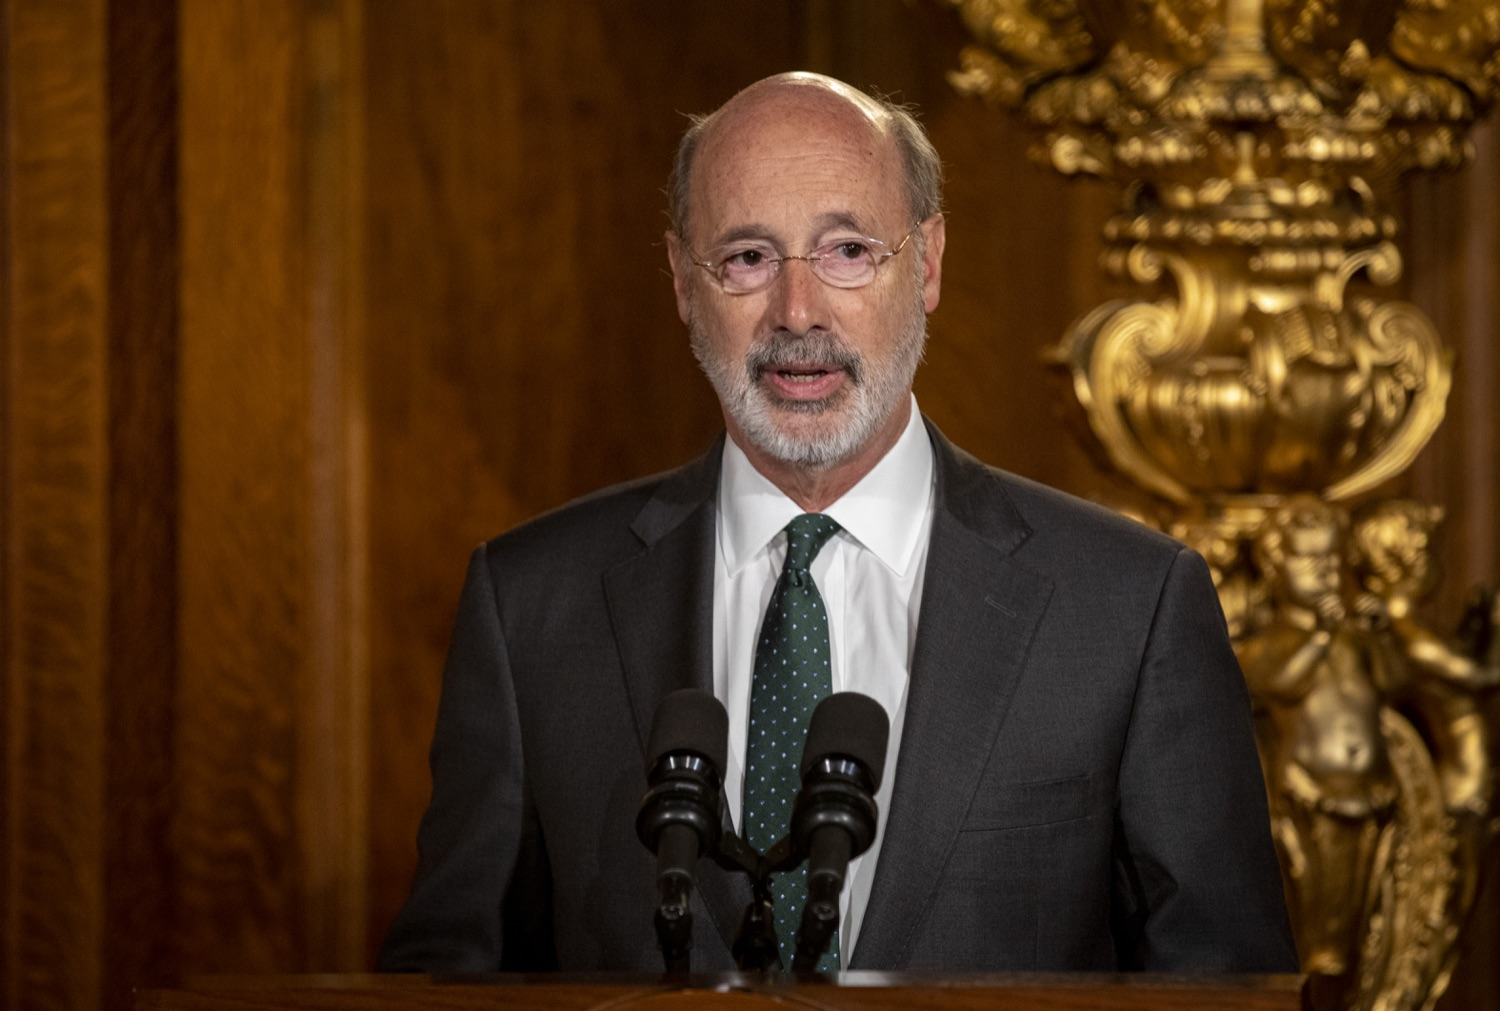 """<a href=""""http://filesource.abacast.com/commonwealthofpa/photo/17469_GOV_ClimateChange_DE_006.jpg"""" target=""""_blank"""">⇣Download Photo<br></a>Governor Wolf Takes Executive Action to Combat Climate Change, Carbon Emissions"""